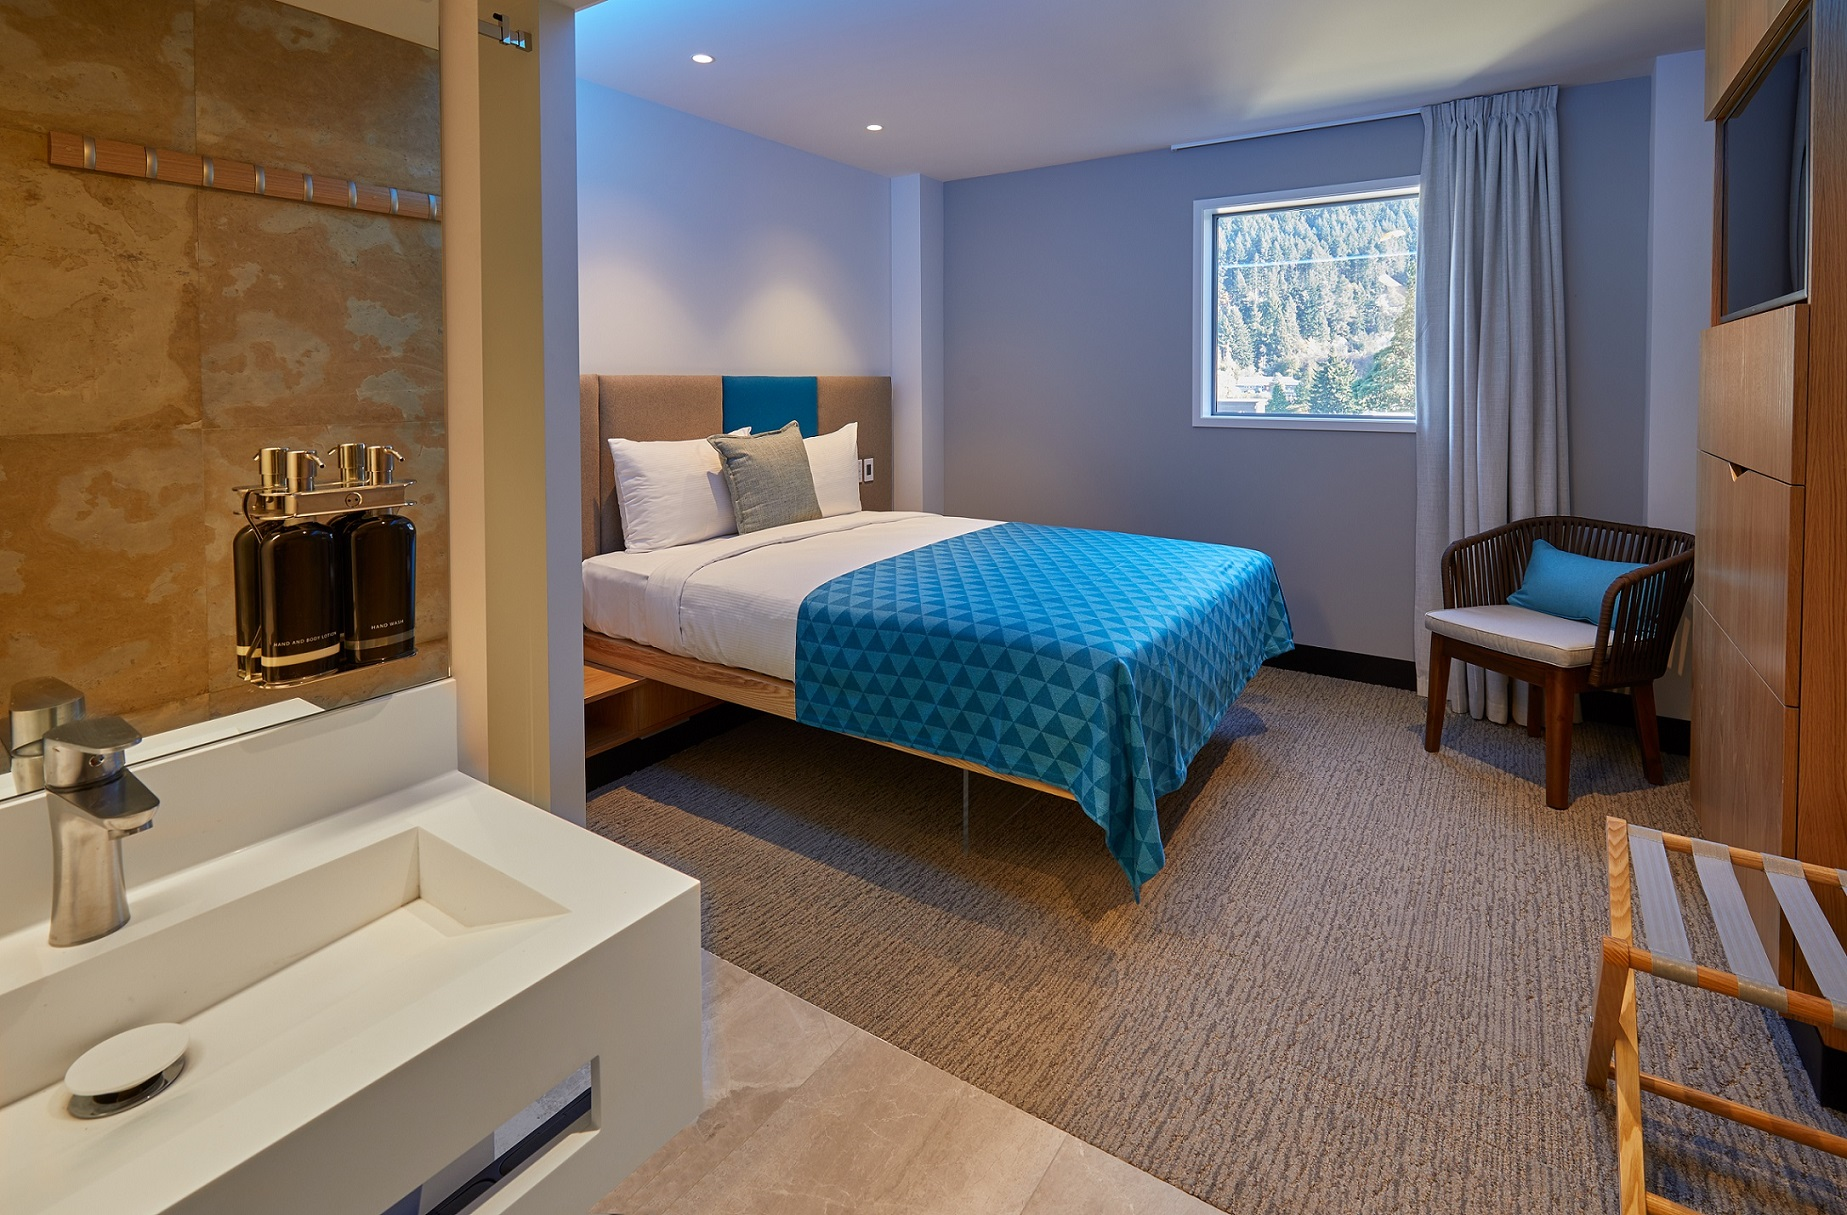 1-rooms-featuring-the-latest-technology-at-mi-pad-queenstown